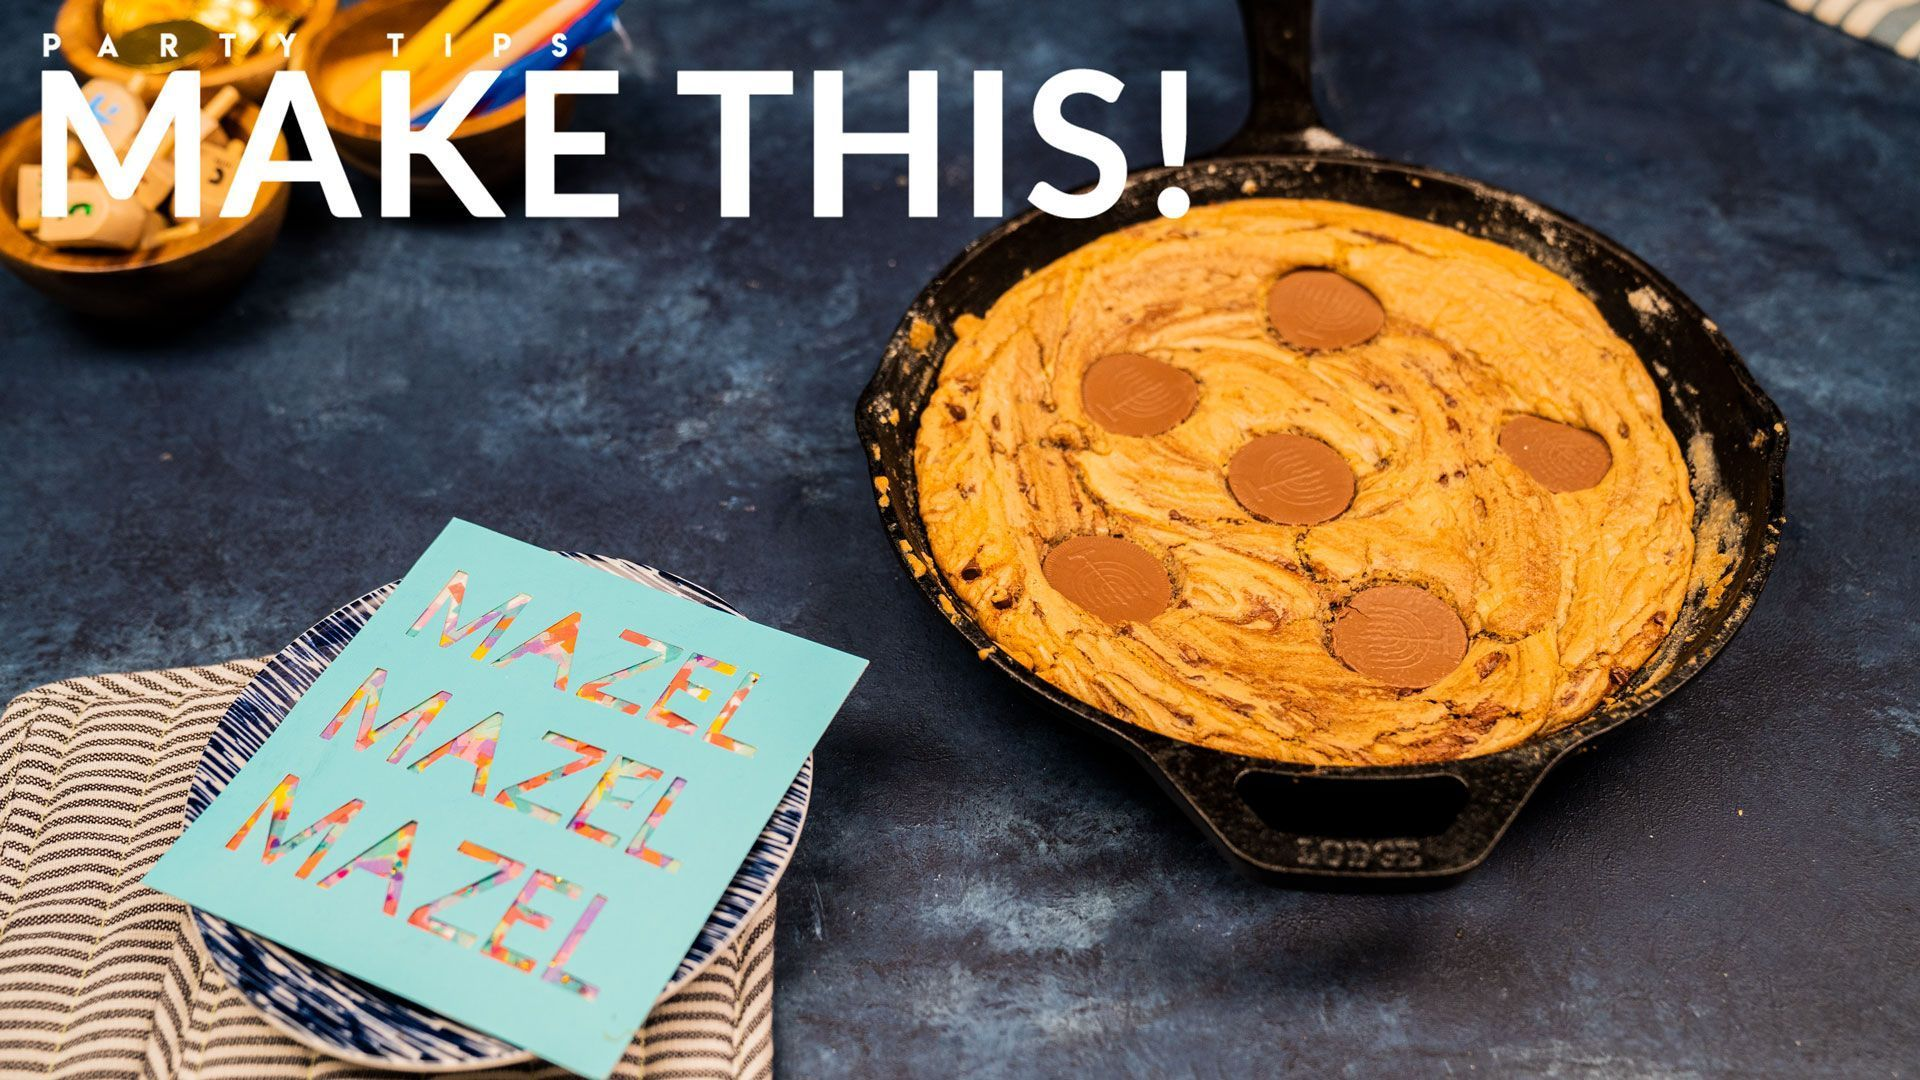 Homemade Gelt Skillet Cookie Cake for Hanukkah  Evite Celebrate Hanukkah with  Homemade Gelt Skillet Cookie Cake for Hanukkah  Evite Celebrate Hanukkah with this recipe f...